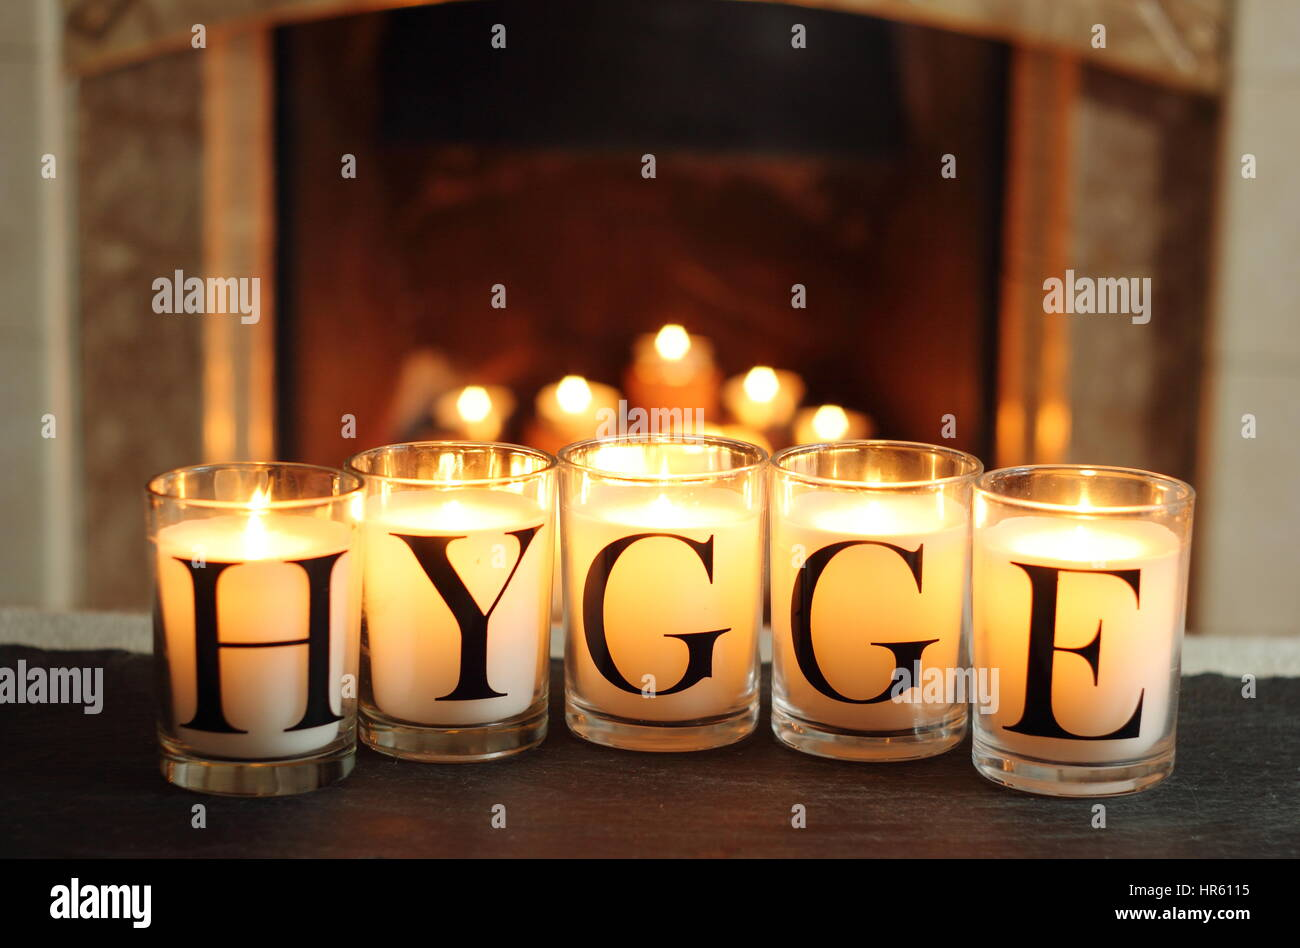 Bougie De L Avent Danoise hygge candles photos & hygge candles images - alamy